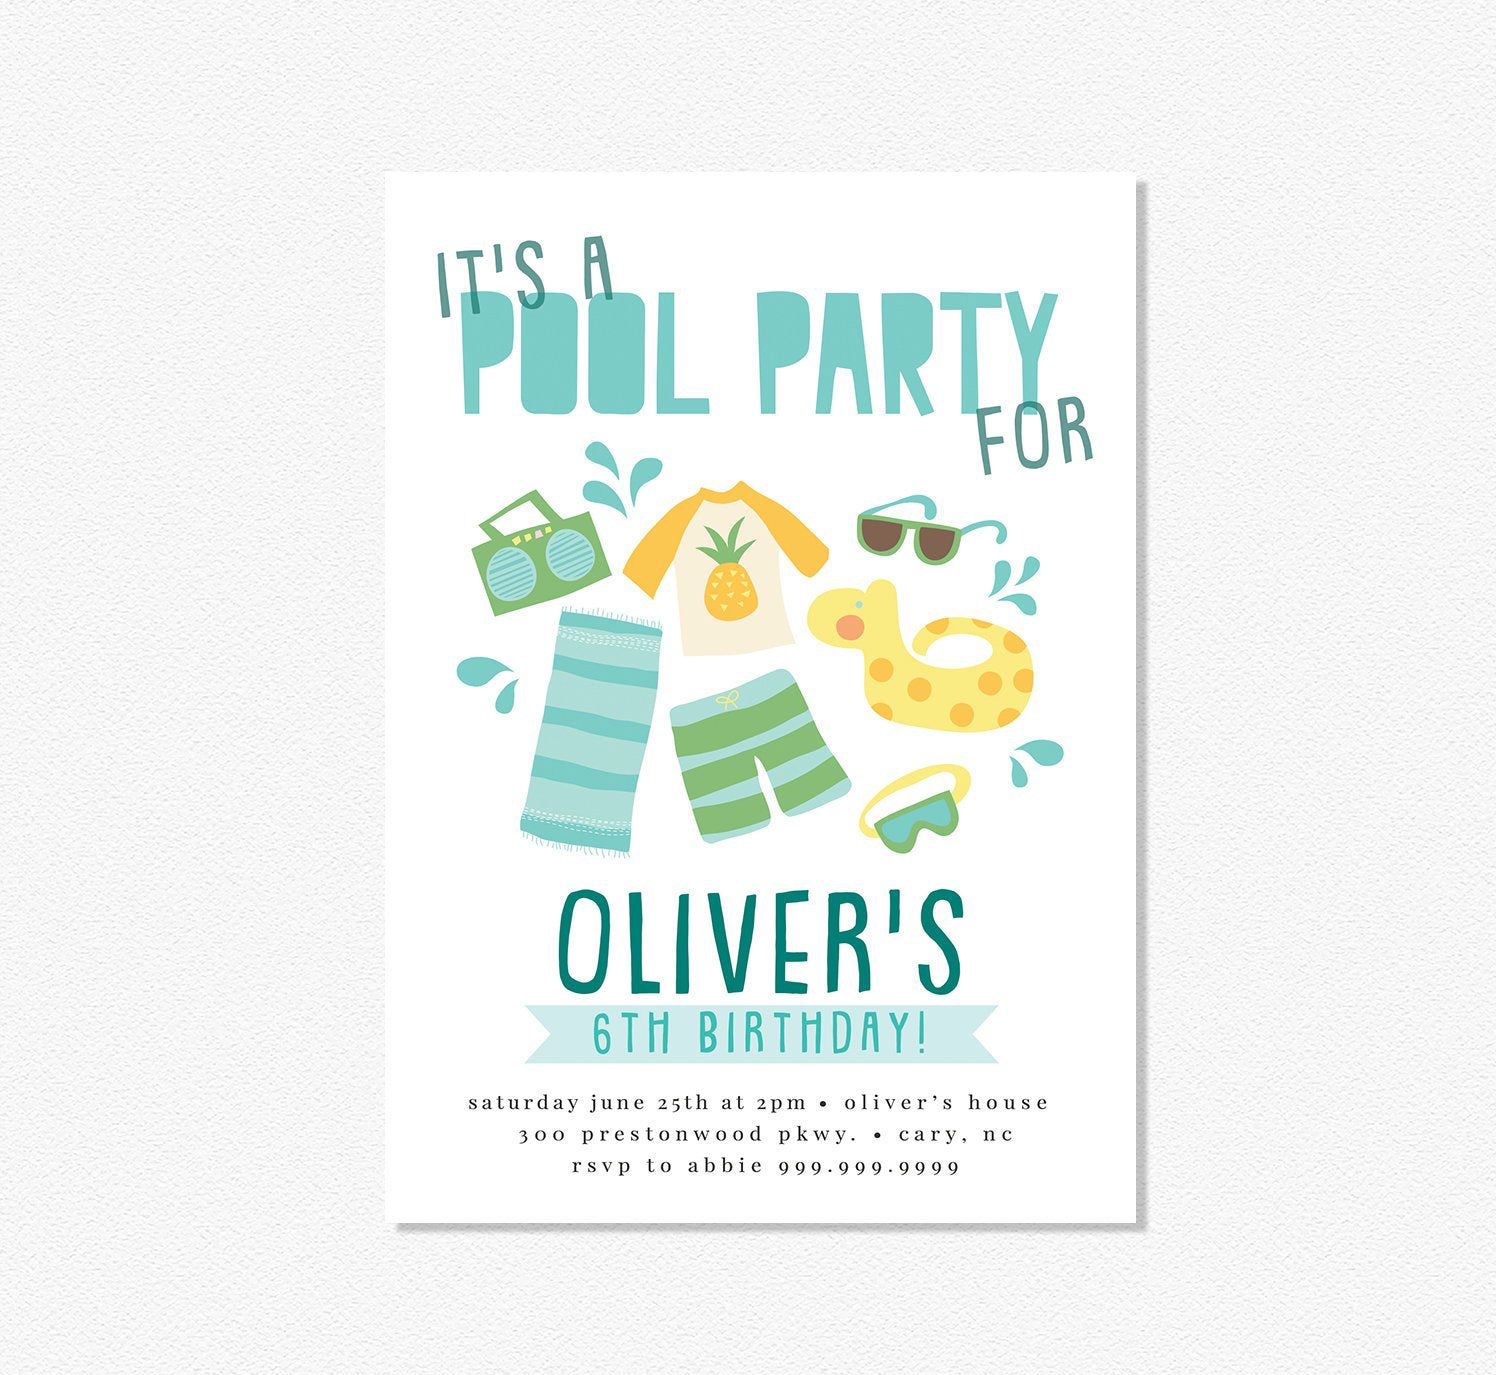 Summer pool party birthday invitation #summerpoolparties